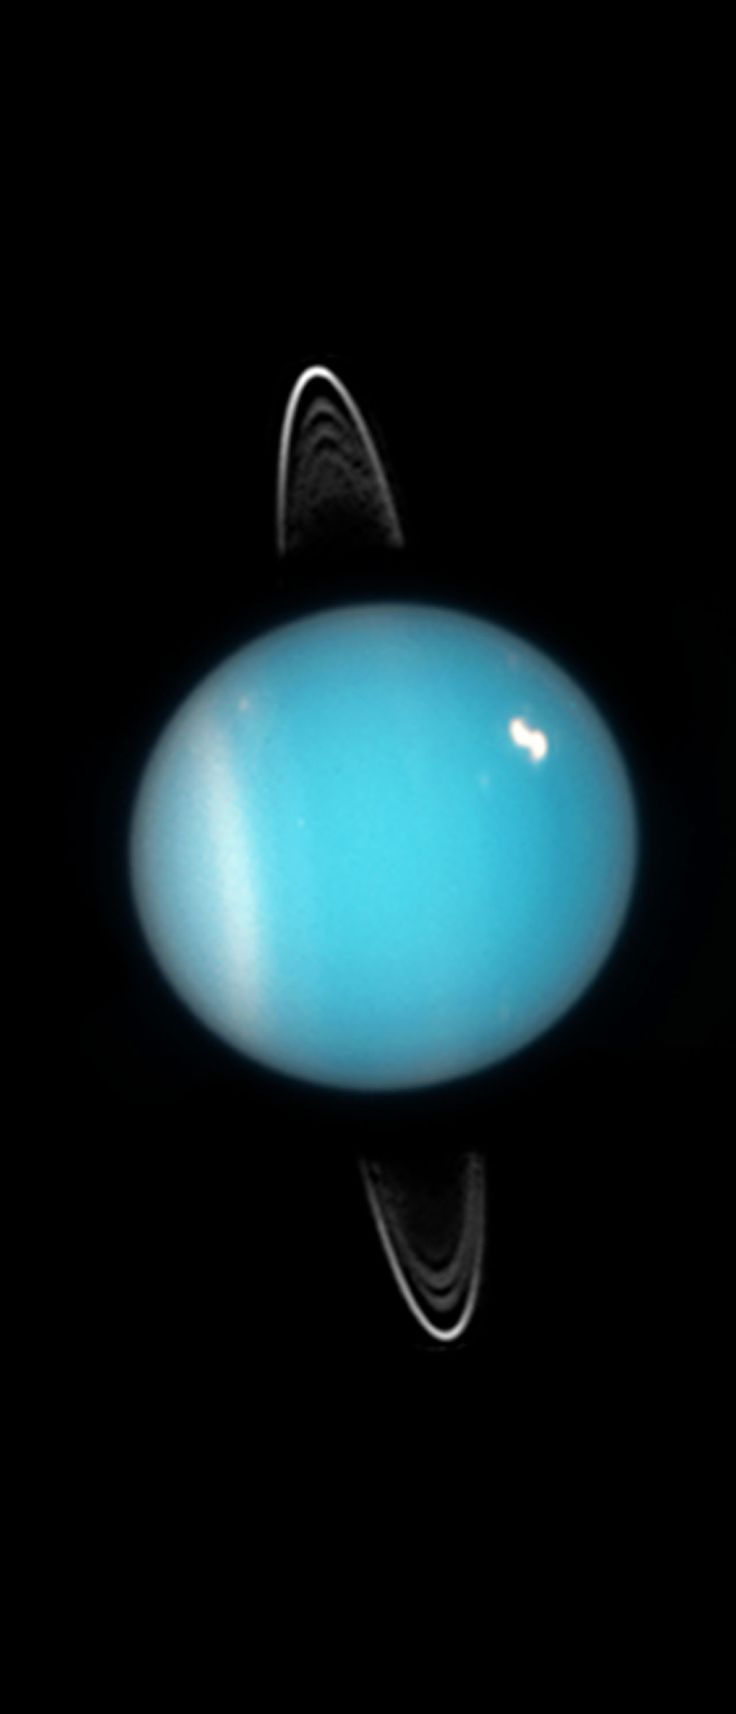 Uranus as seen by the NASA/ESA Hubble Space Telescope in 2005. - http://www.spacetelescope.org/images/opo0732c/